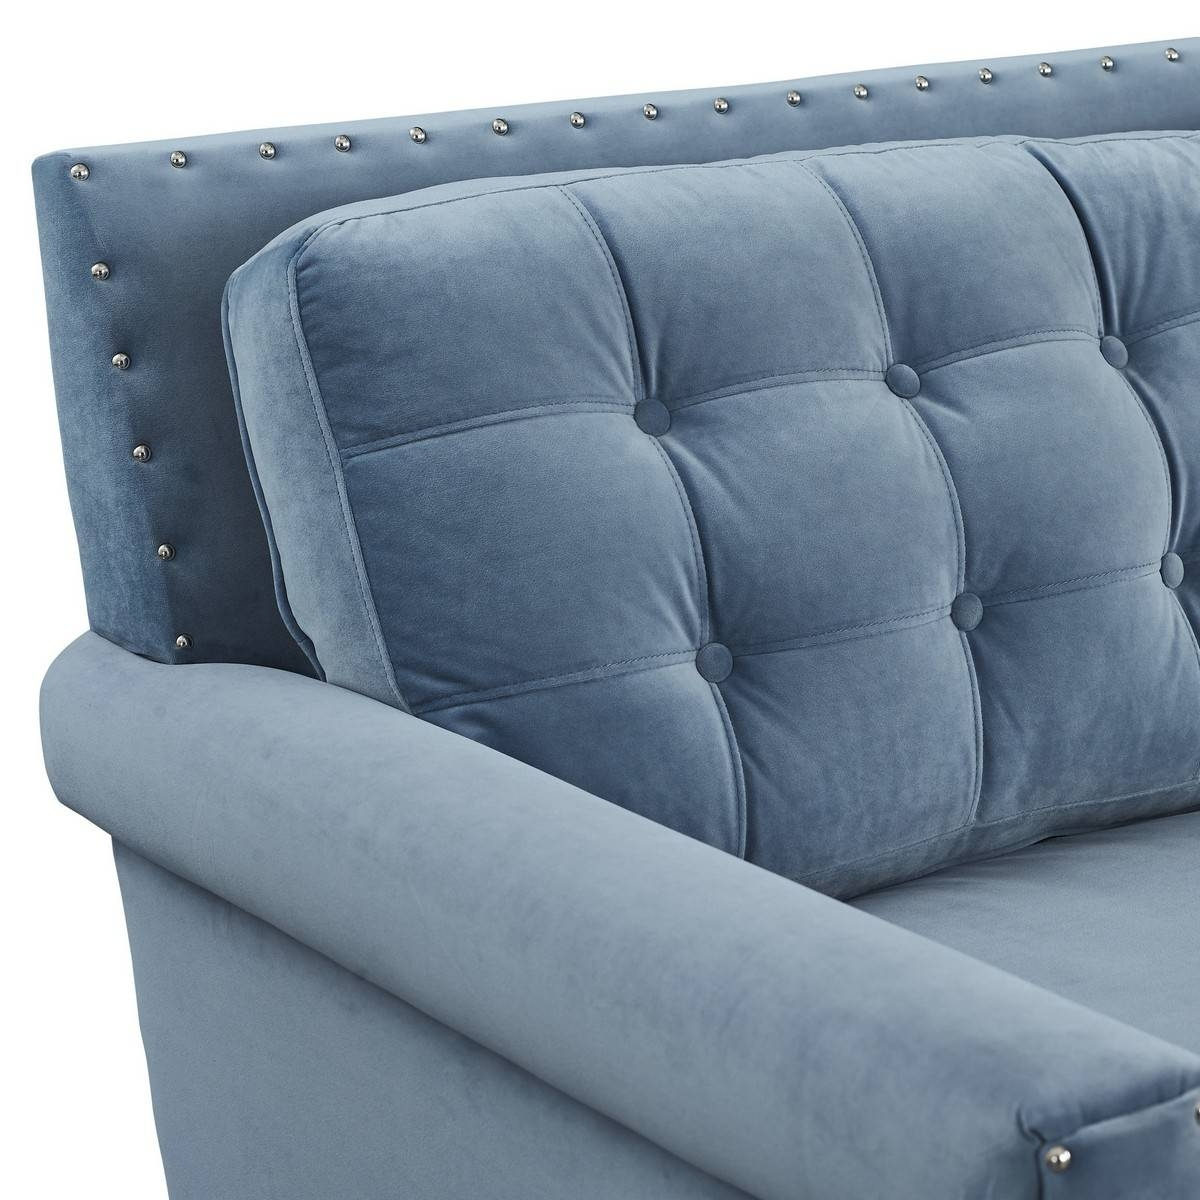 Tov Furniture Jonathan Blue Velvet Sofa S75 At Homelement within Jonathan Sofa (Image 23 of 25)